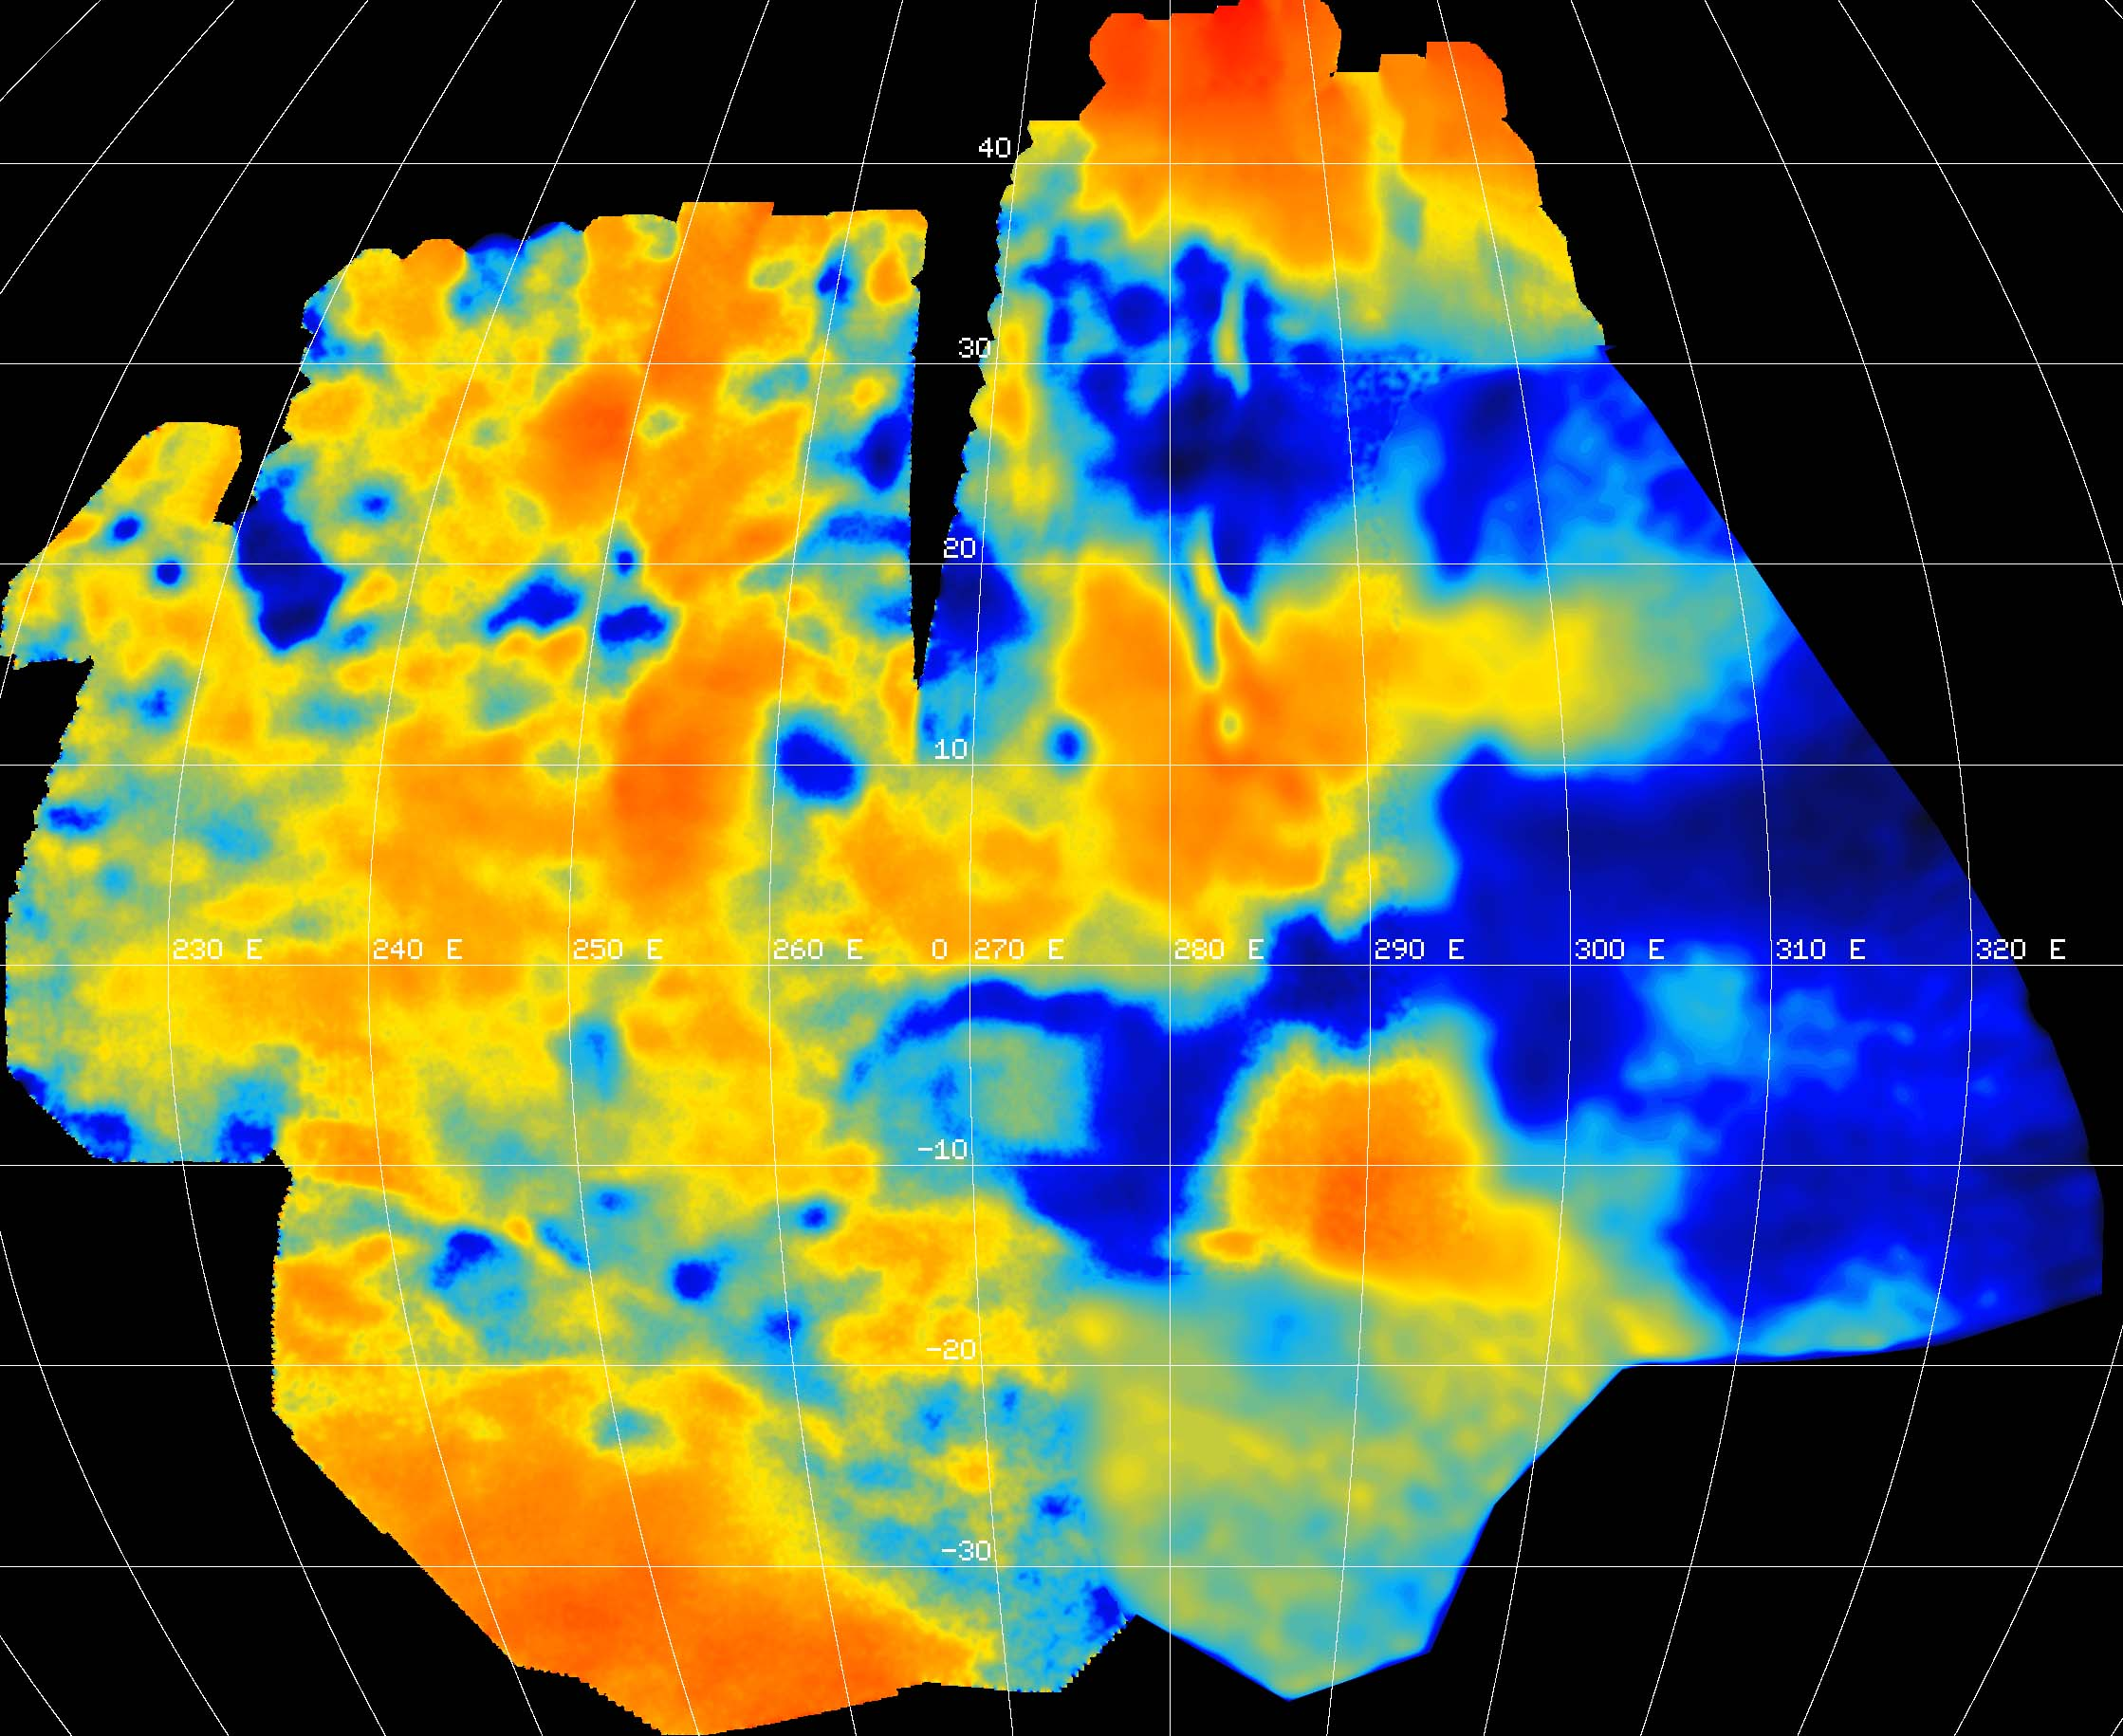 Happy second birthday to Venus Express | The Planetary Society on temperature of planets, venus cloud map, temperature on venus in fahrenheit,